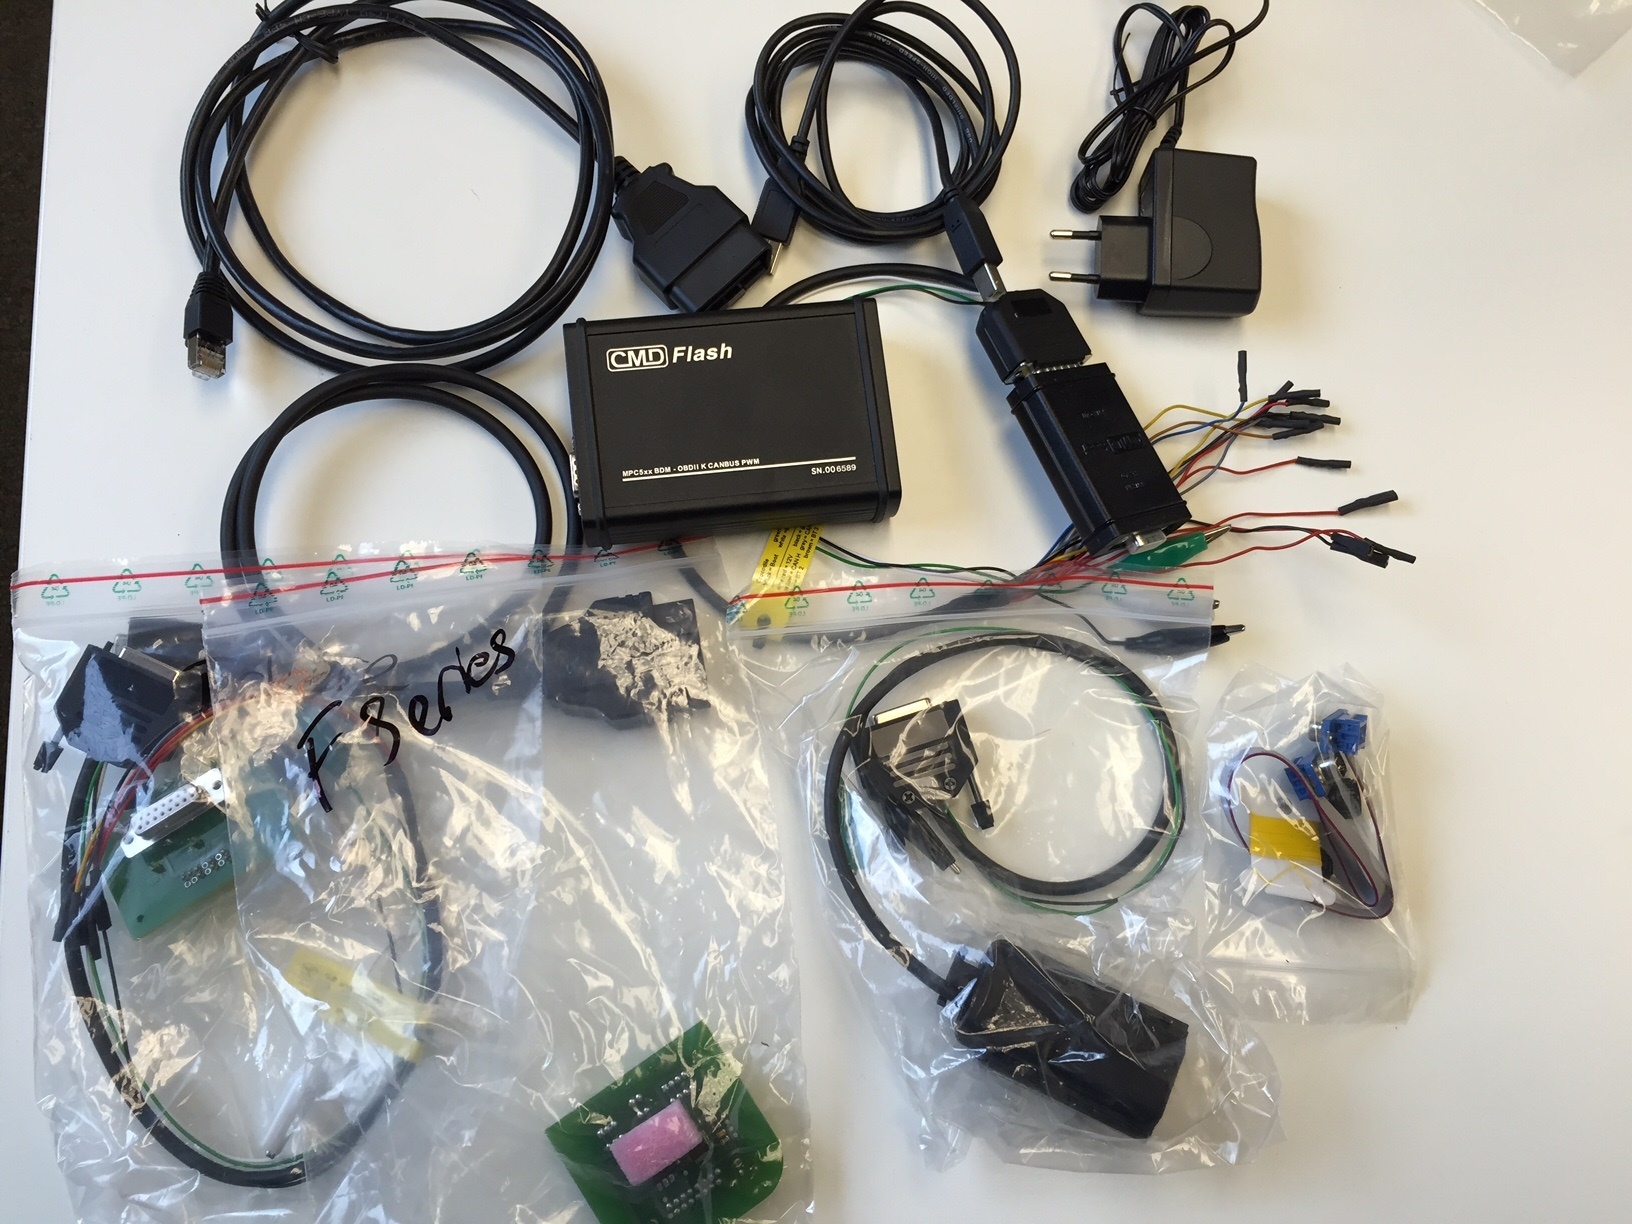 CMD Slave Pro Dealer ECU Tuning Start Up Kit OBDII & Bench Flash